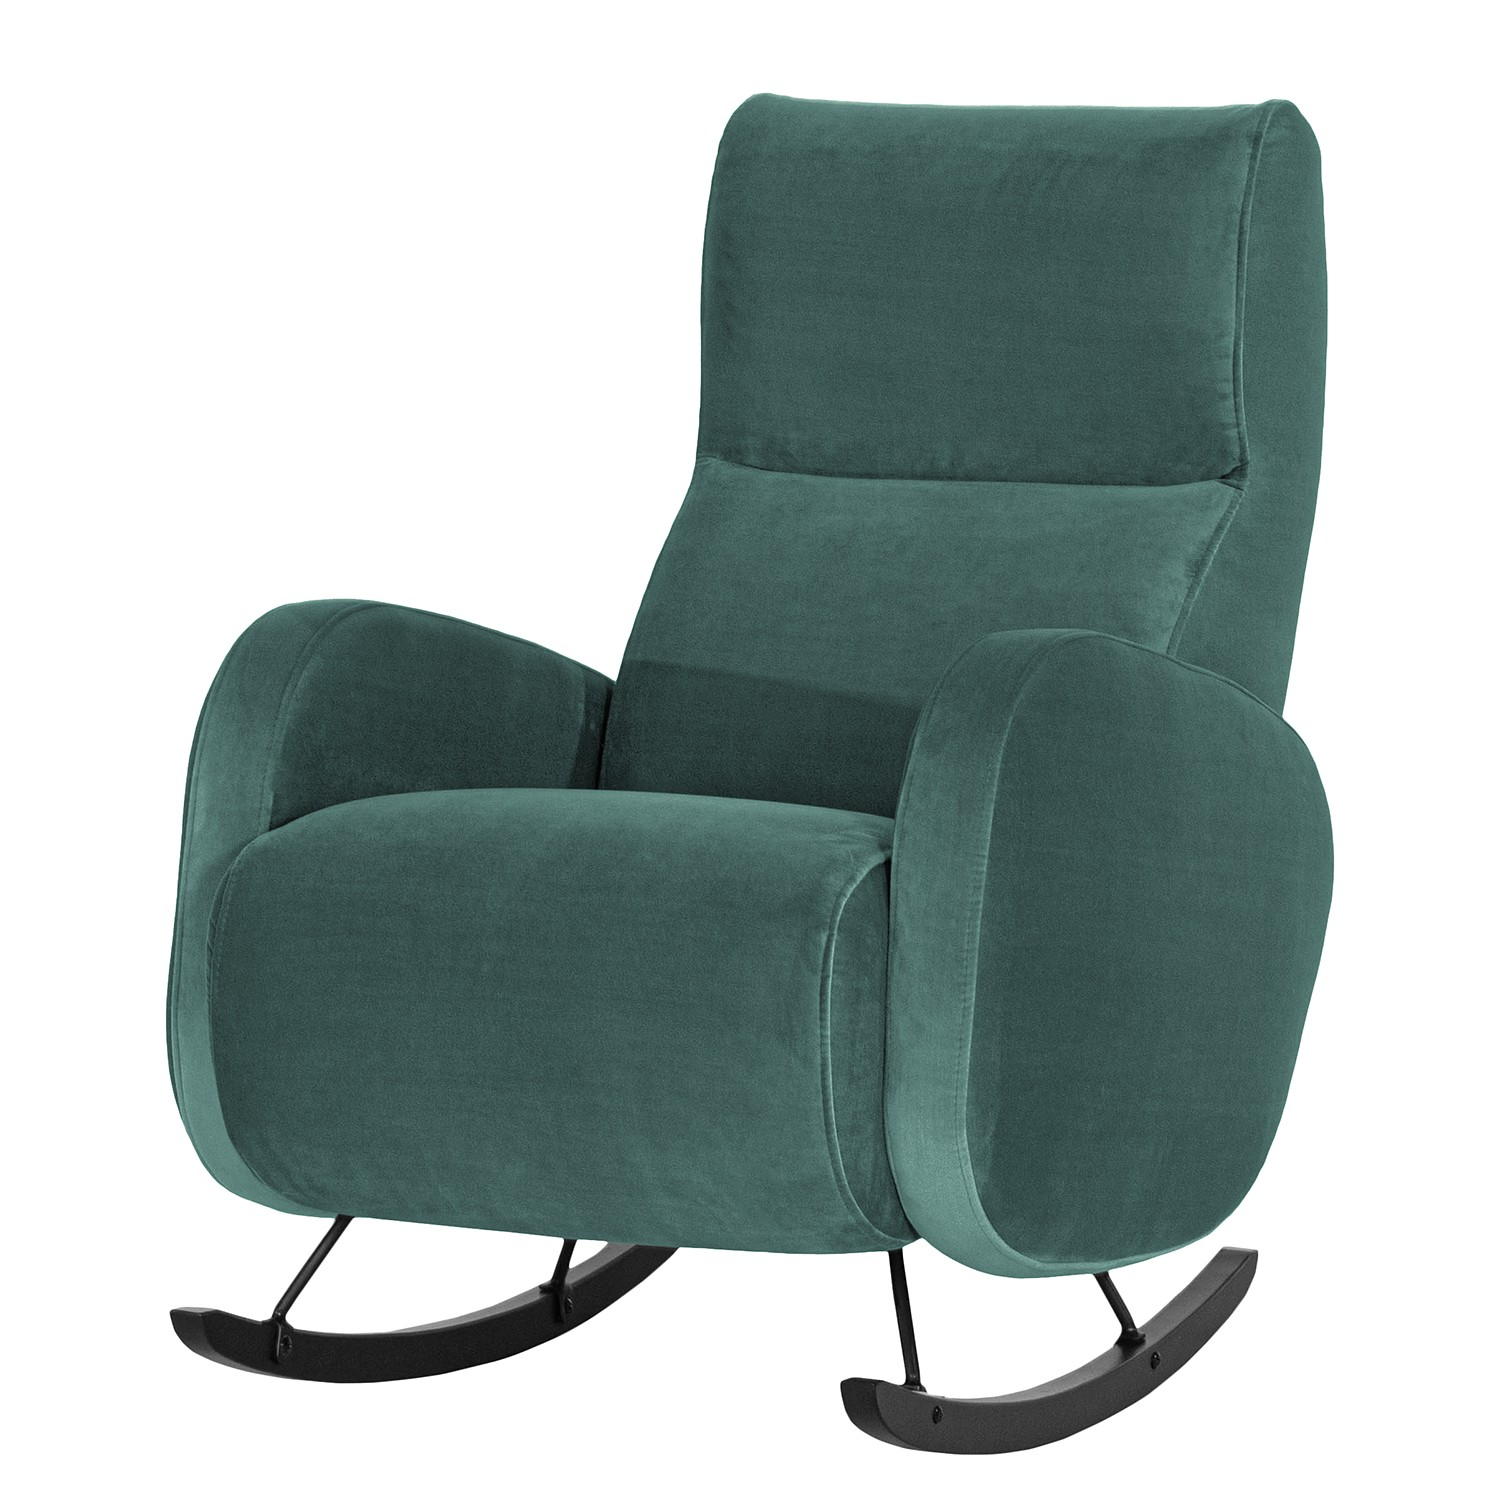 Home24 Schommelfauteuil Vains I, home24